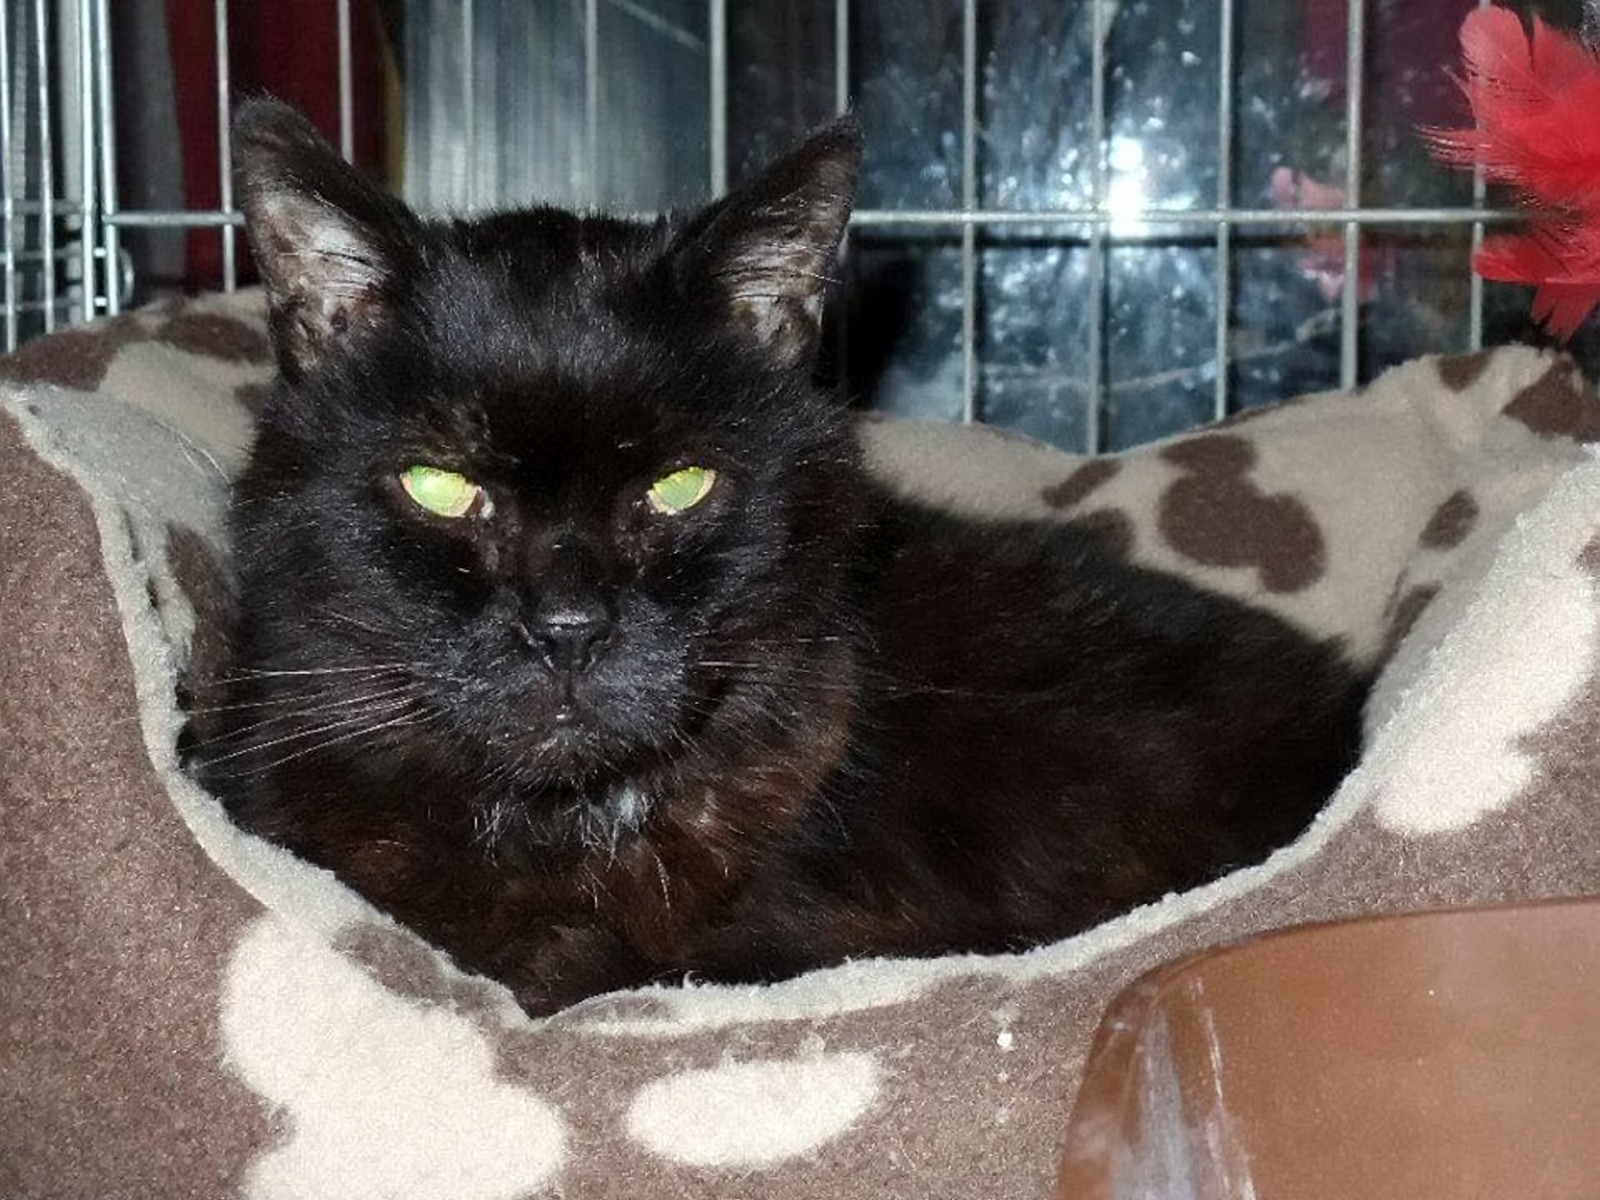 Missing cat 'euthanised by vet' because it did not have a microchip – just THREE HOURS after he was found